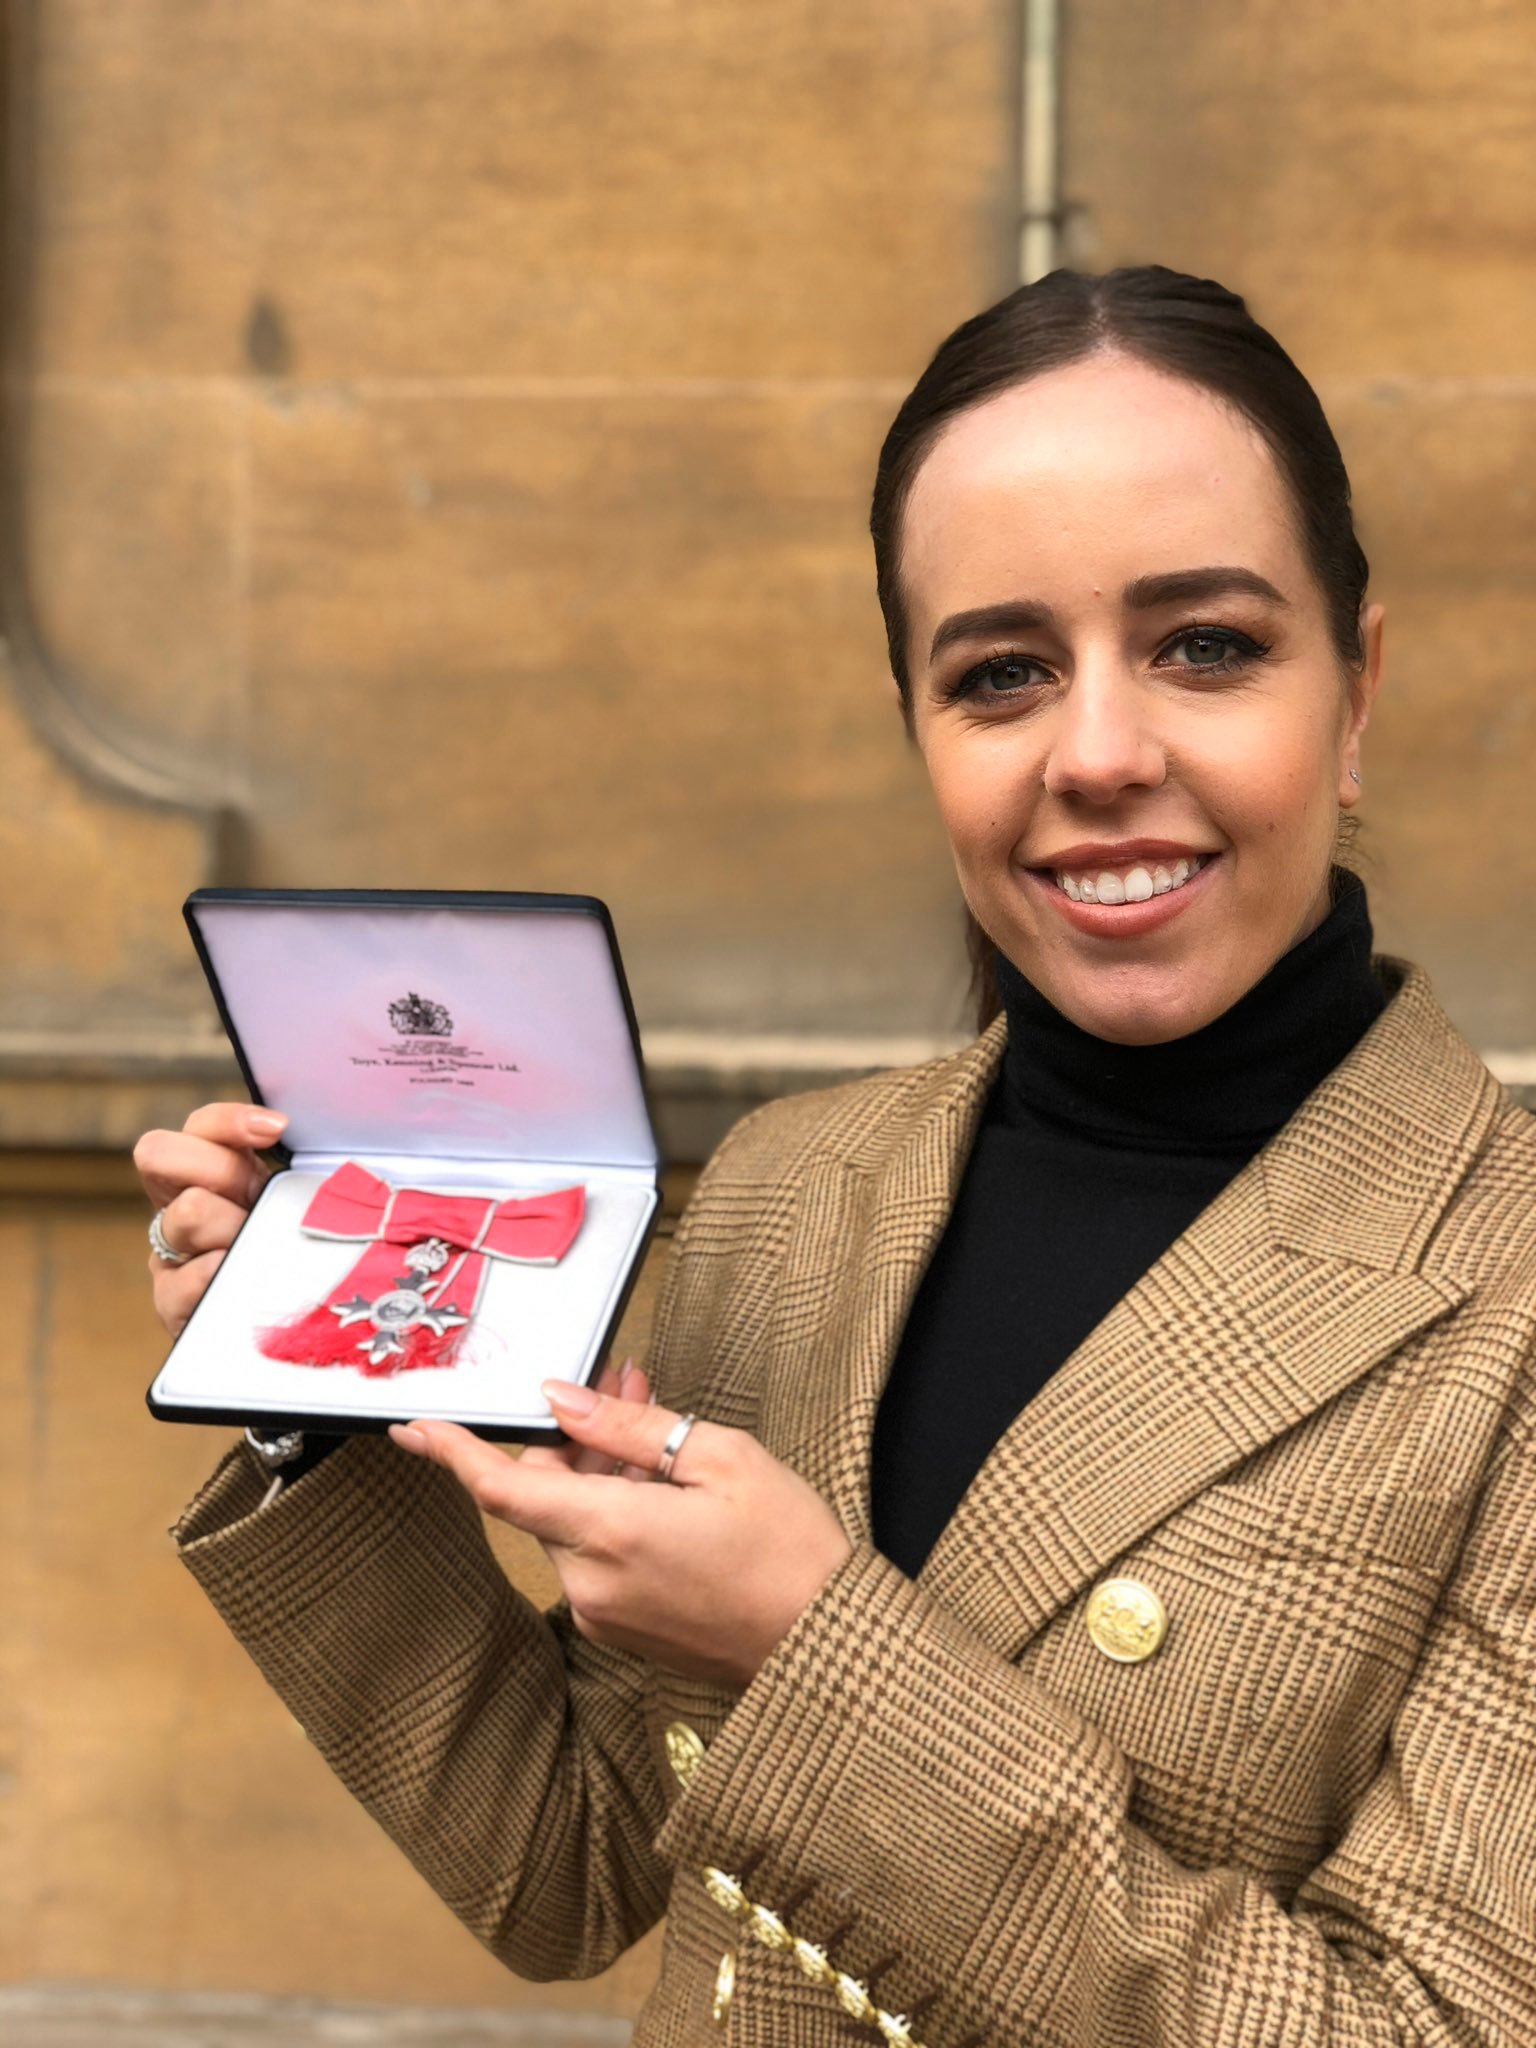 Golfer Georgia Hall attends Buckingham Palace to receive MBE and is asked by Prince Charles for golf lessons